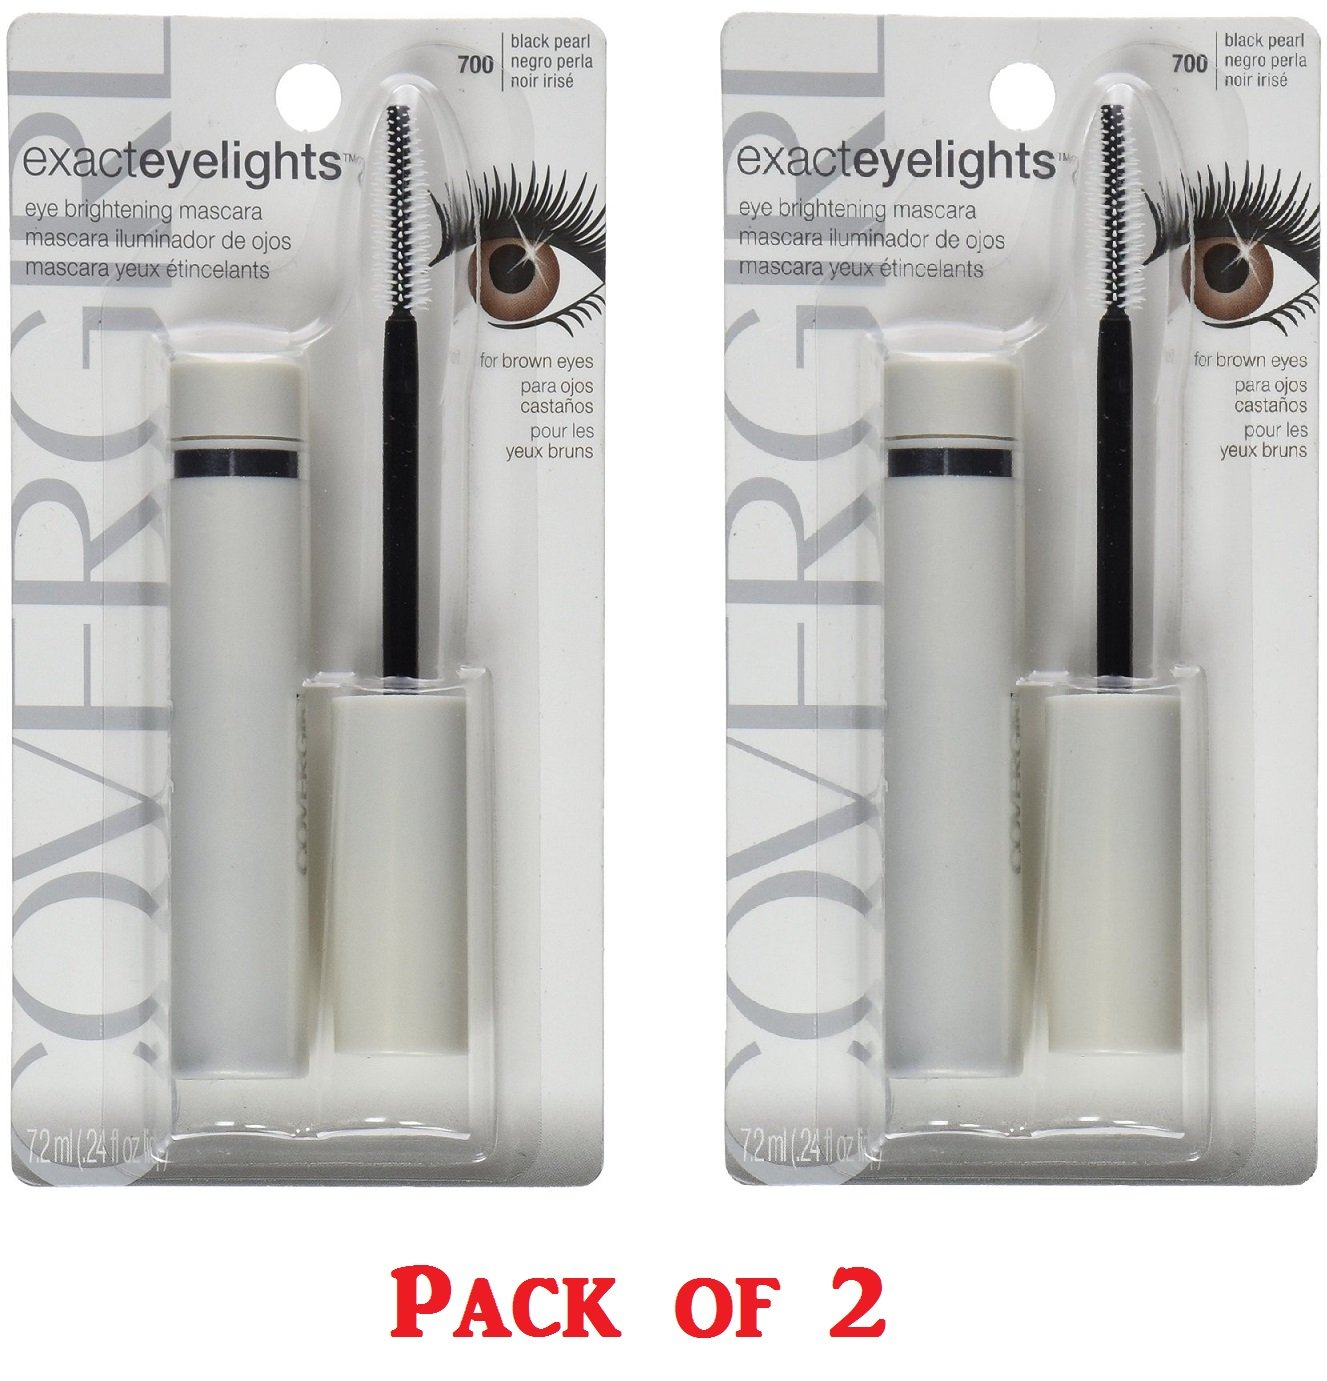 Amazon.com : CoverGirl Exact EyeLights Regular Mascara, Black Pearl [700], 0.24 oz (Pack of 4) : Beauty